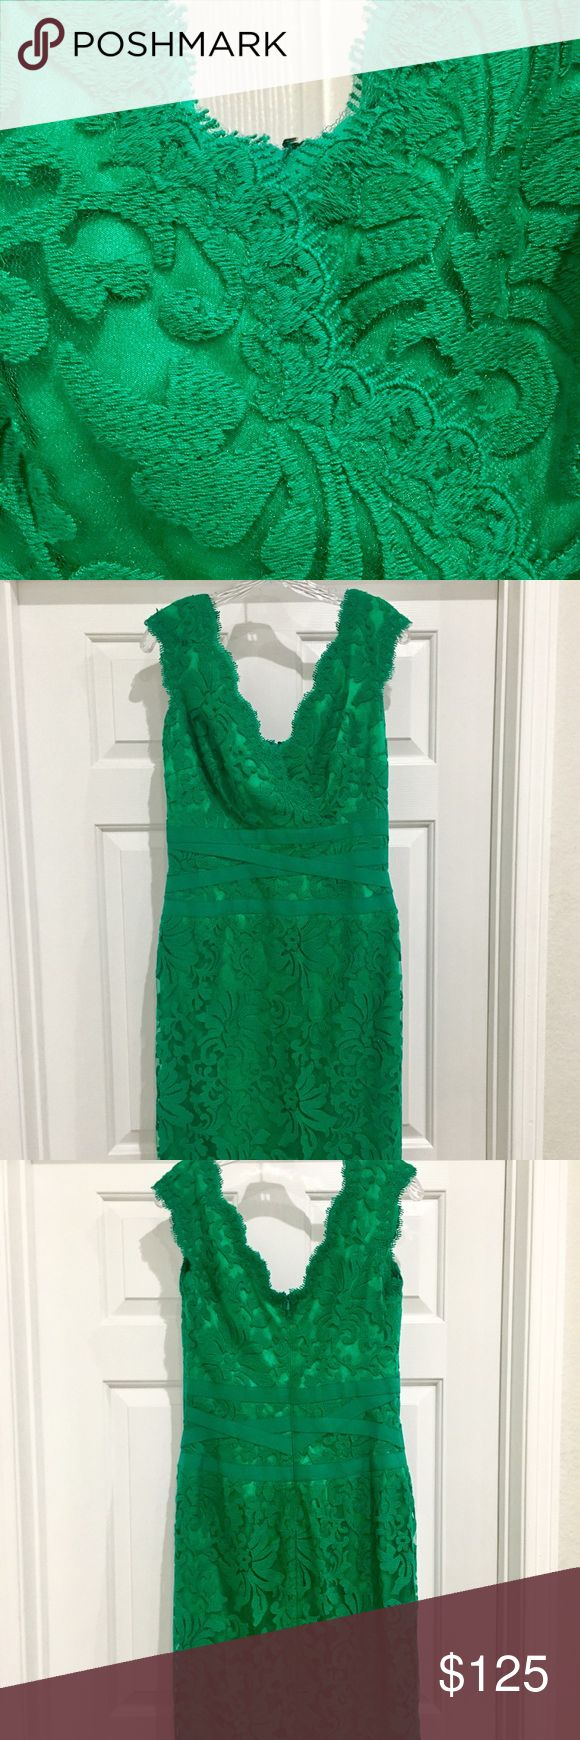 Tadashi Shoji Embroidered Lace Sheath Dress Size 8 Like new! Only worn once. Beautiful green color, flattering fit, hits most people below the knee. I originally bought this item for $240 at Nordstrom. Tadashi Shoji Dresses